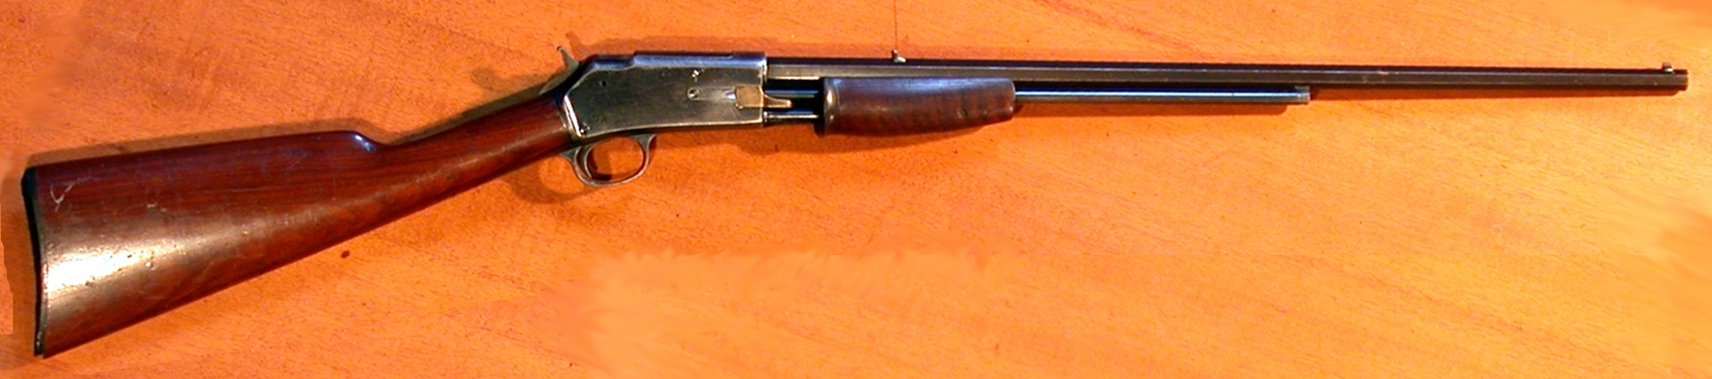 Small frame Colt Lightning .22 rimfire gallery rifle. (Picture courtesy Wikipedia).